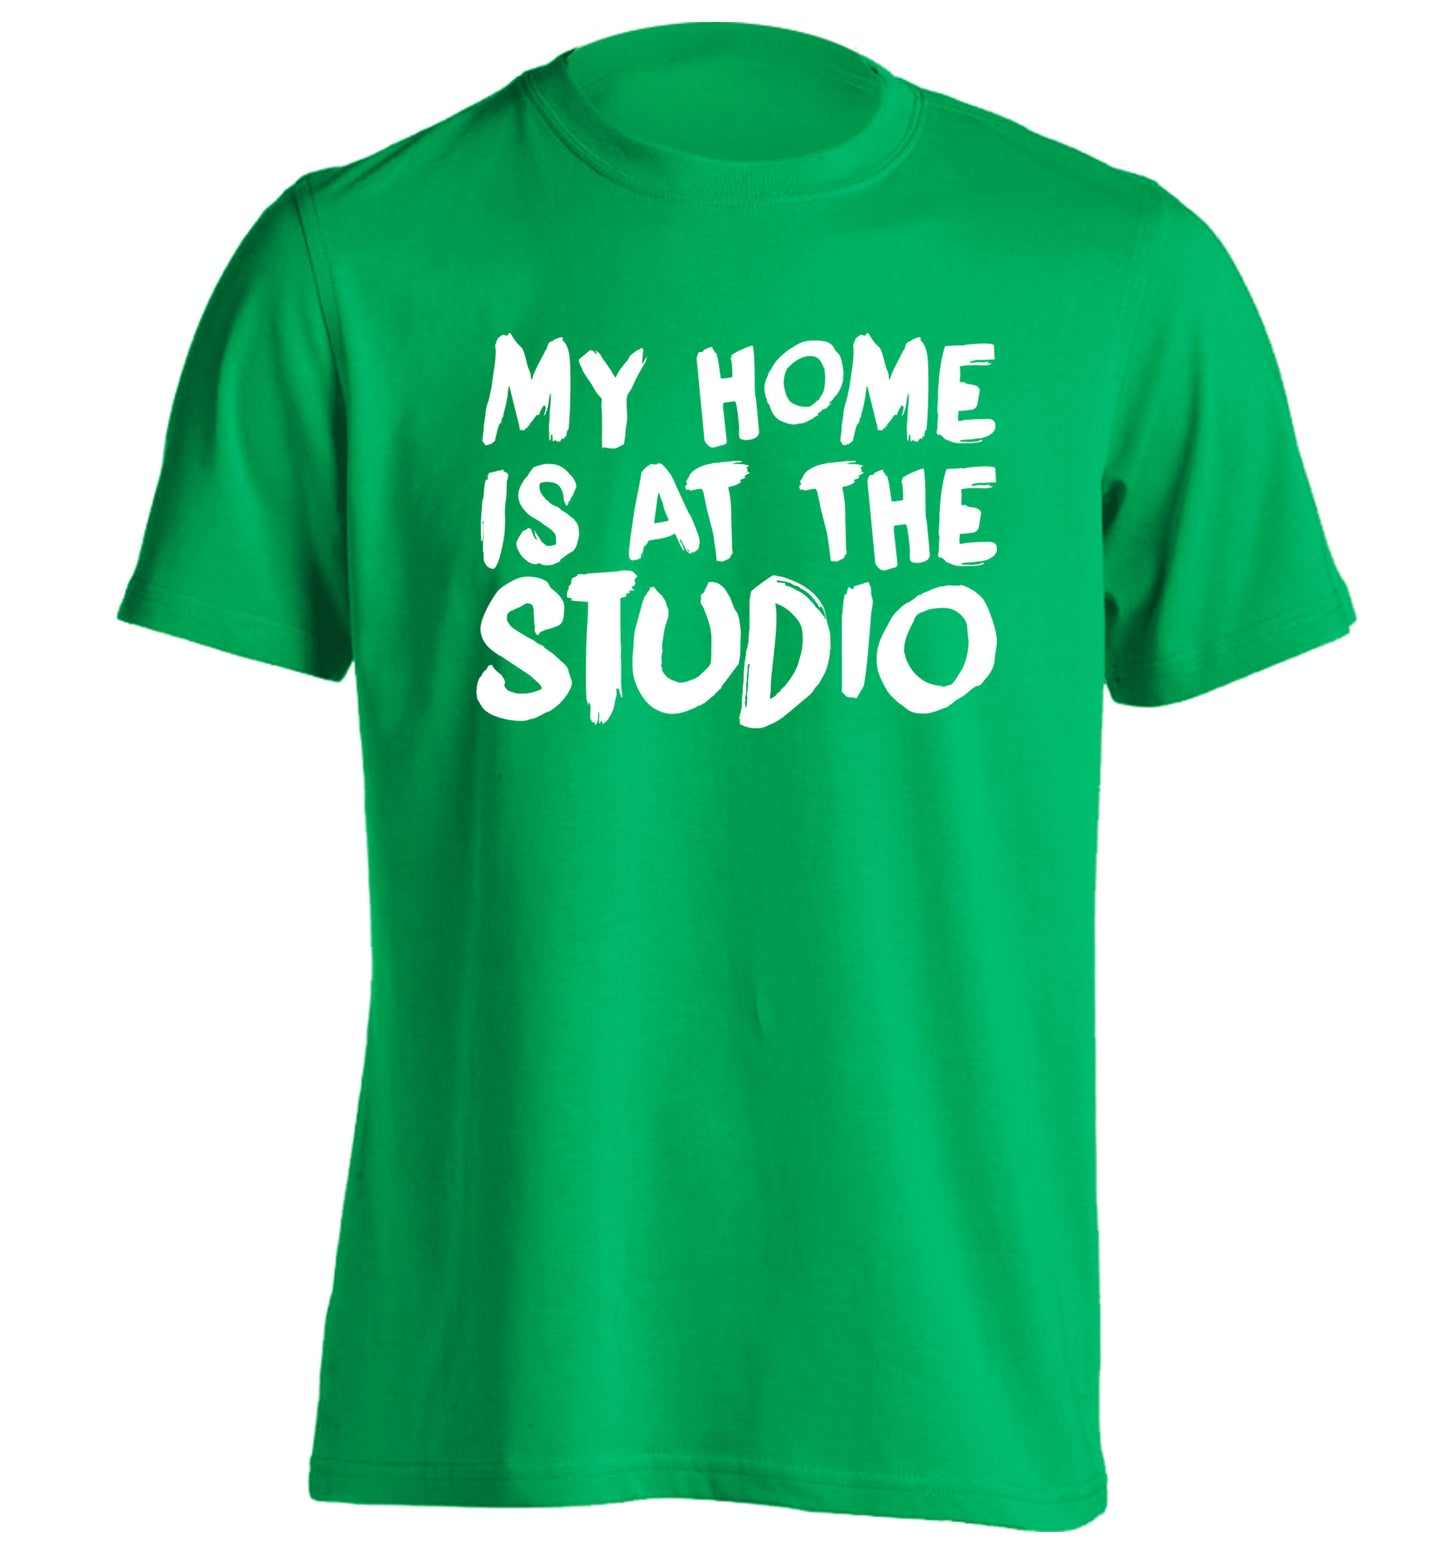 My home is at the studio adults unisex green Tshirt 2XL